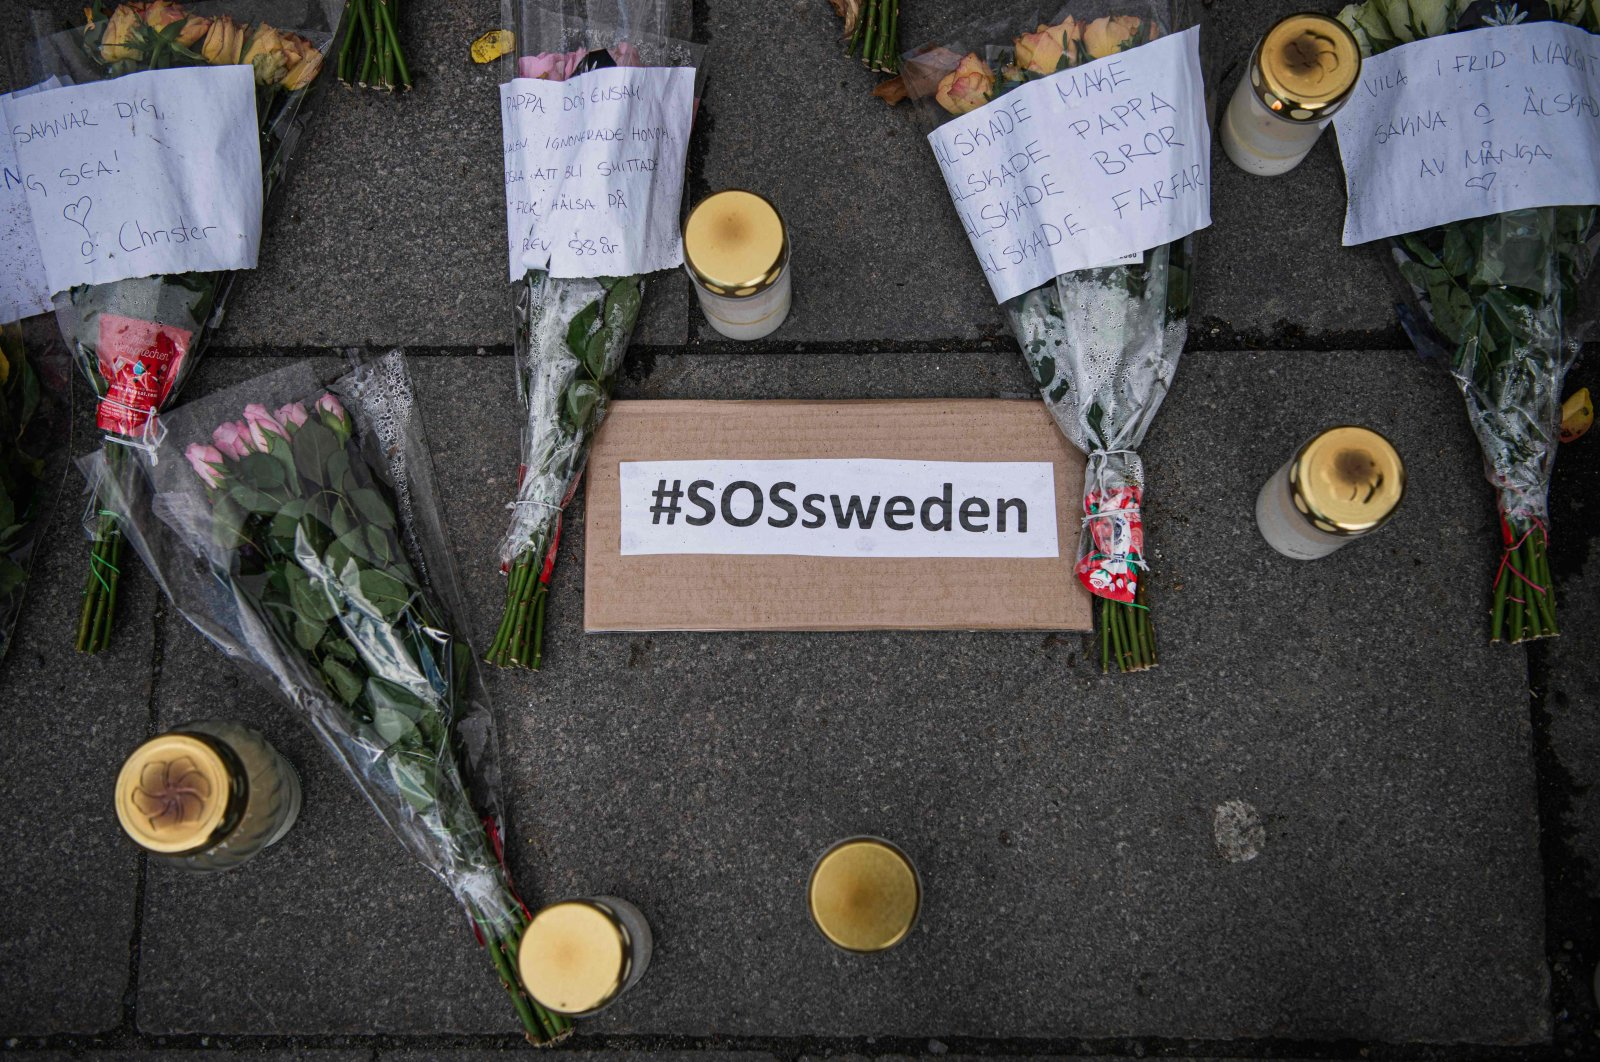 Picture taken on April 29, 2020 showing a memorial in Stockholm's Mynttorget Square to those lost to the new coronavirus. Many have voiced frustration over Sweden's softer approach to curbing the illness. (AFP Photo)